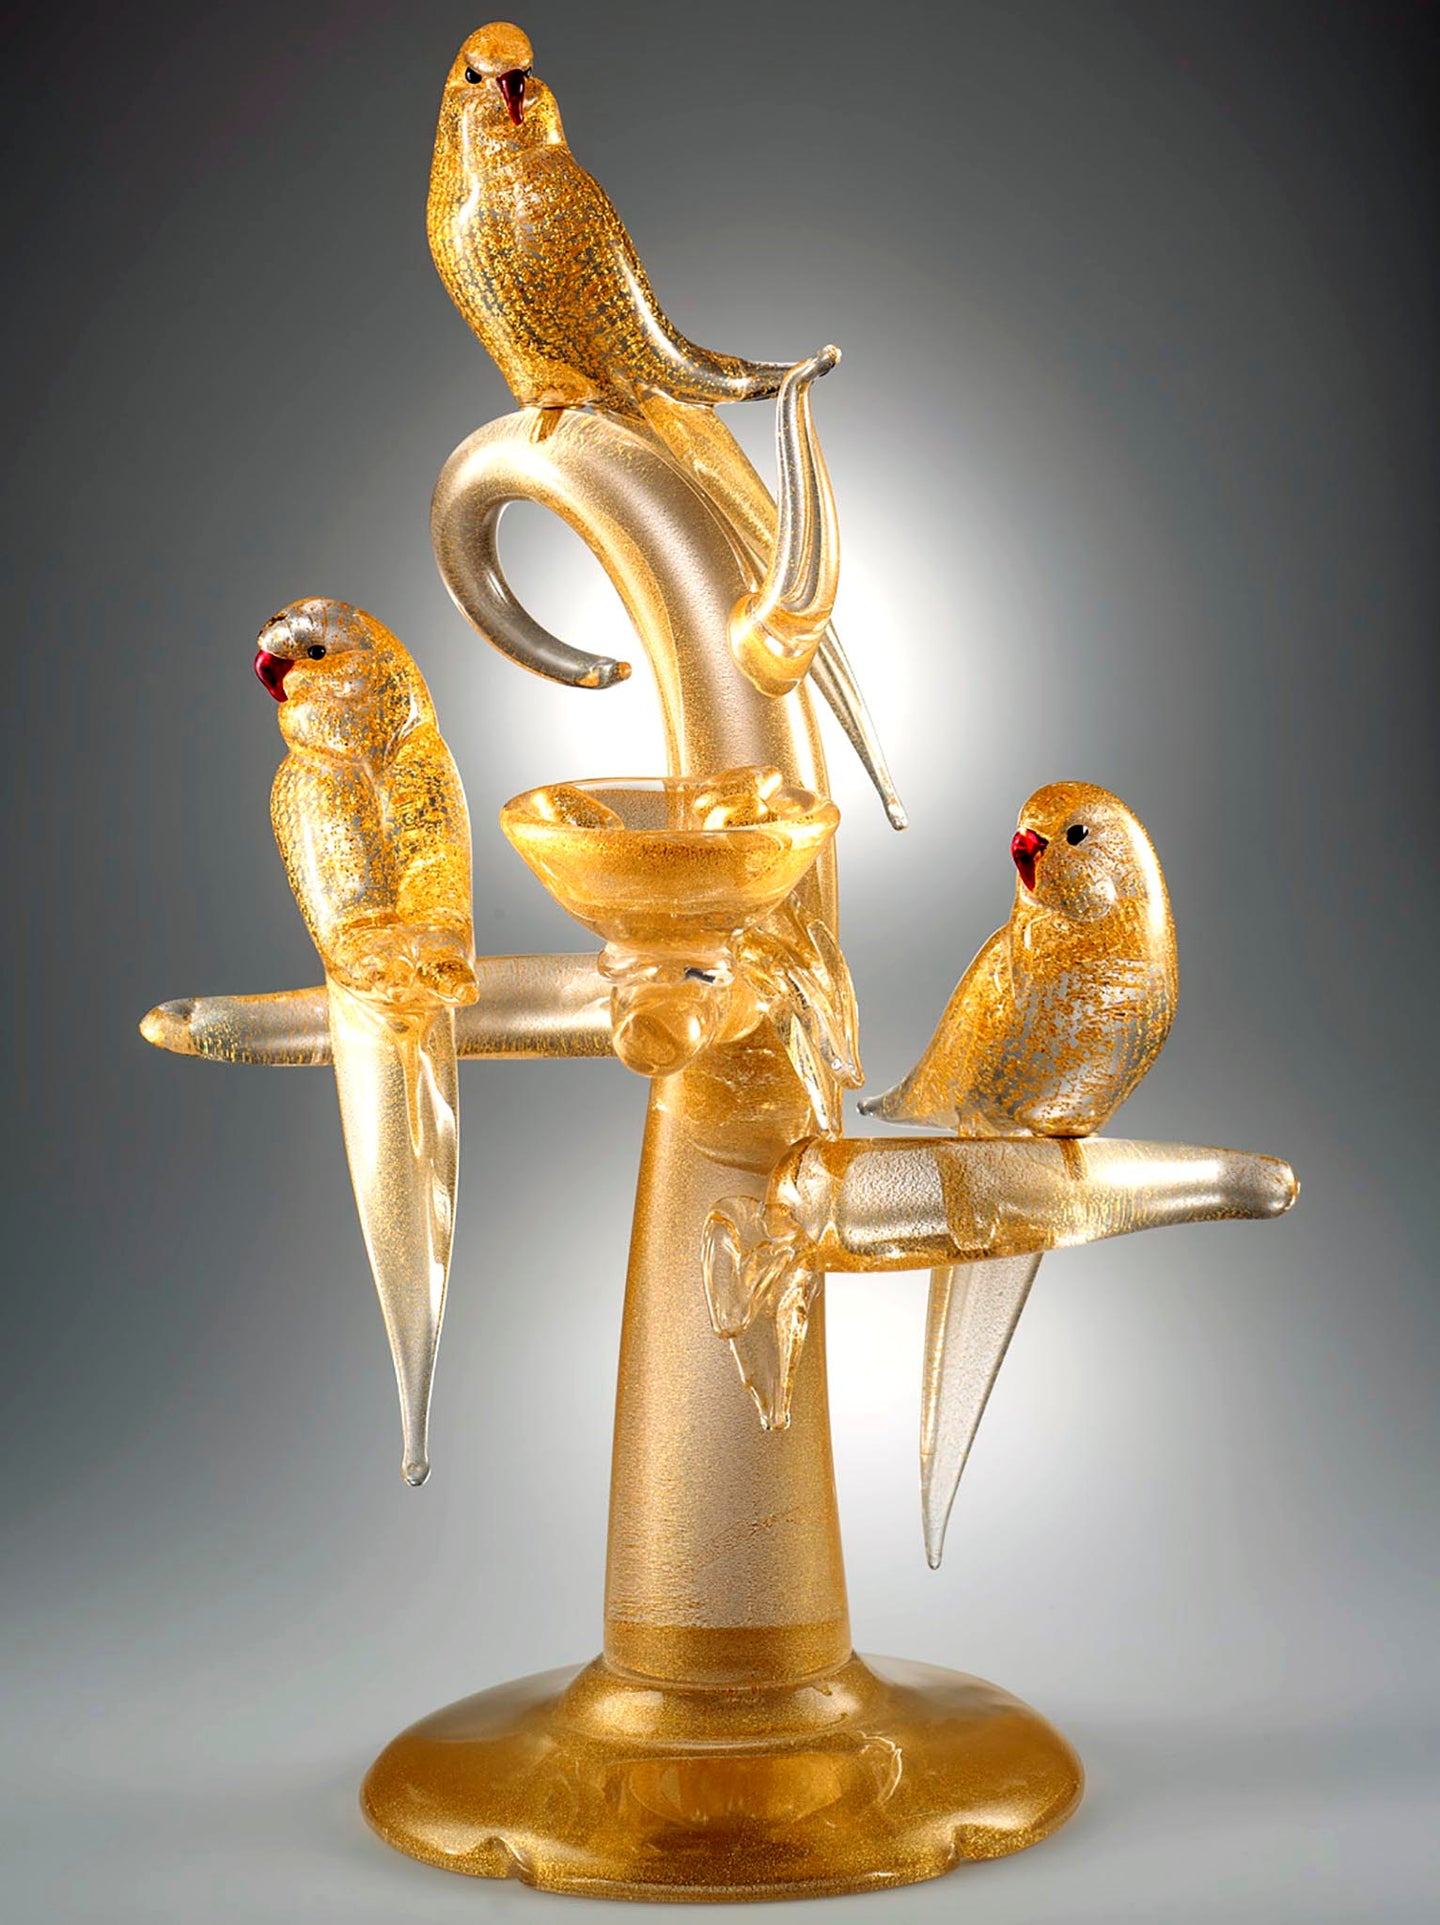 GOLD PARAKEETS Murano Glass Sculpture